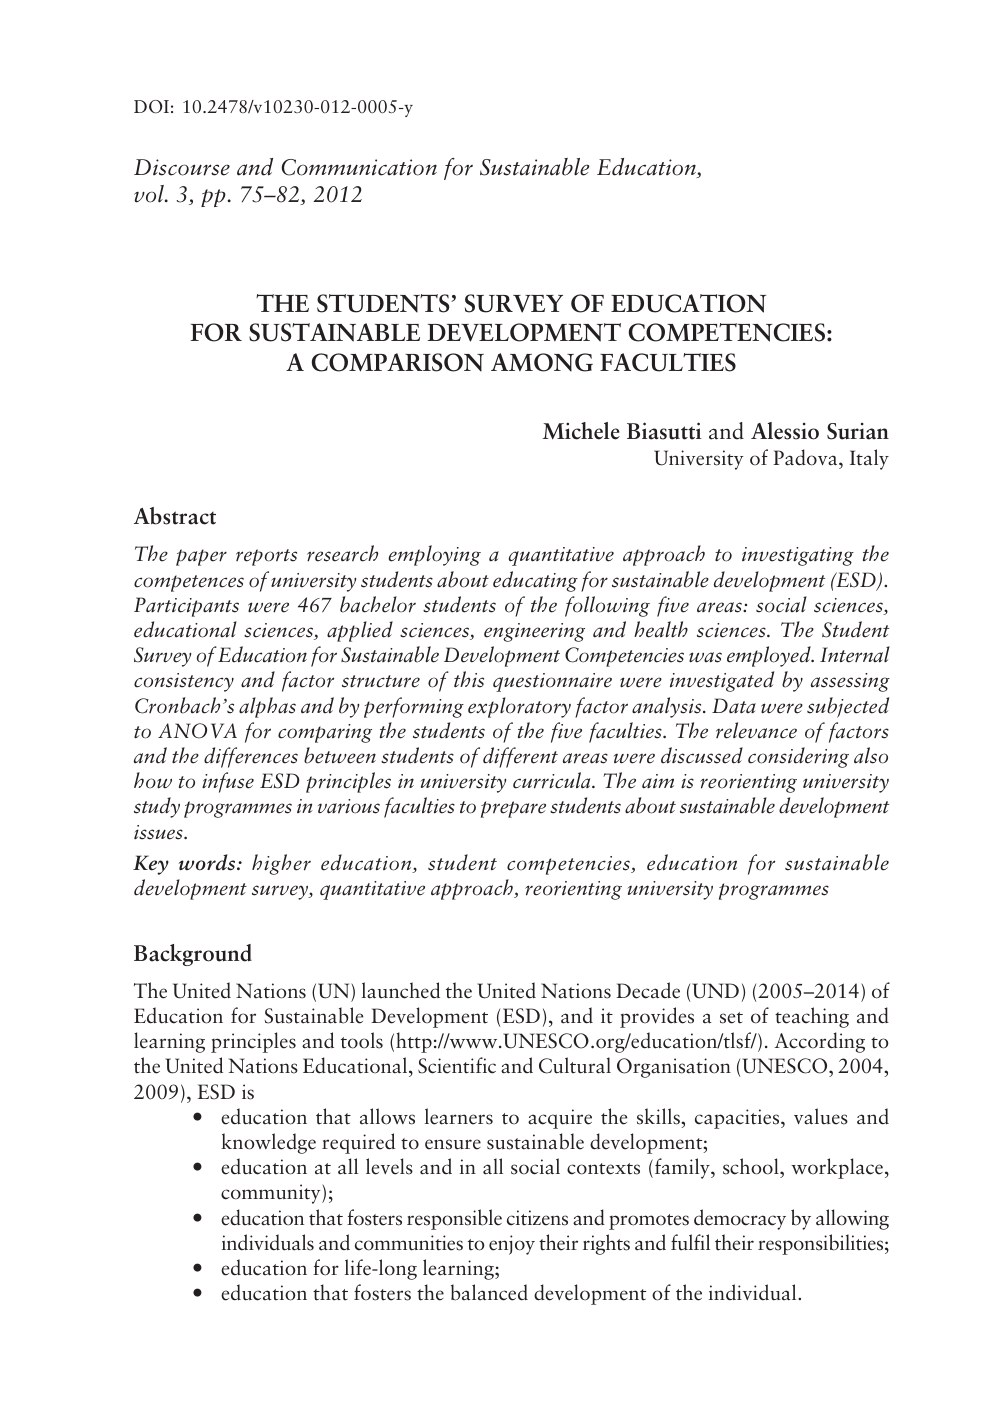 The Students' Survey of Education for Sustainable